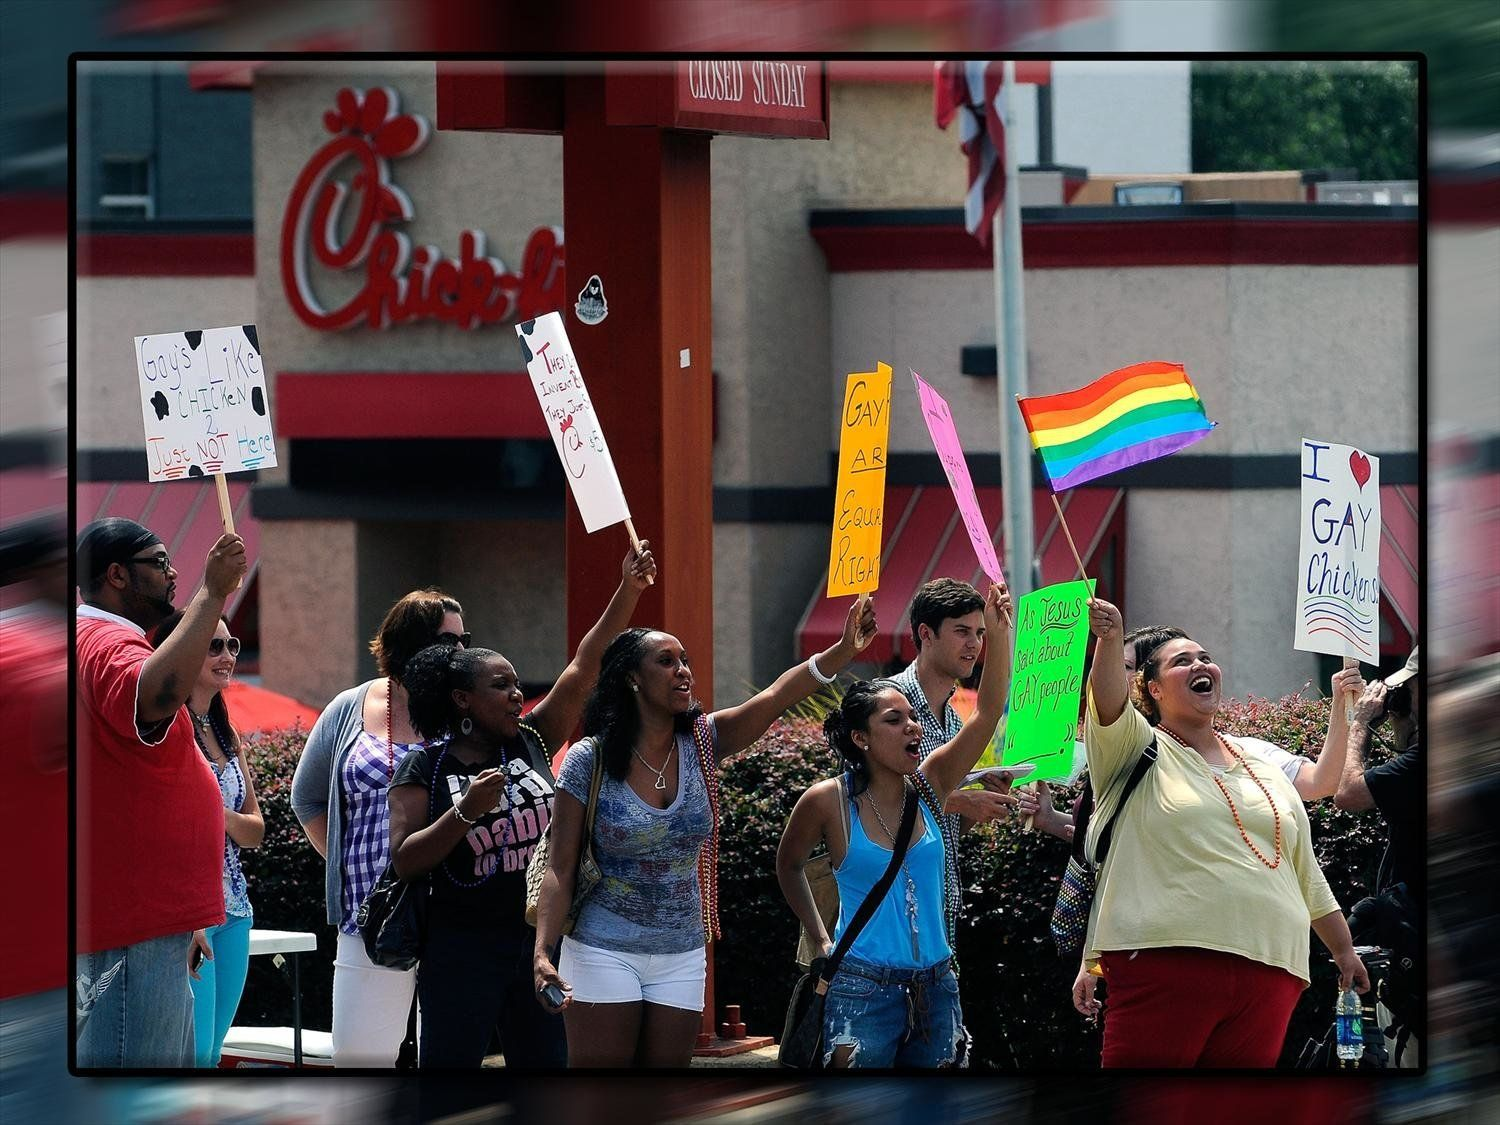 University Removes Chick-fil-A As Dining Option, Citing Chain's LGBTQ